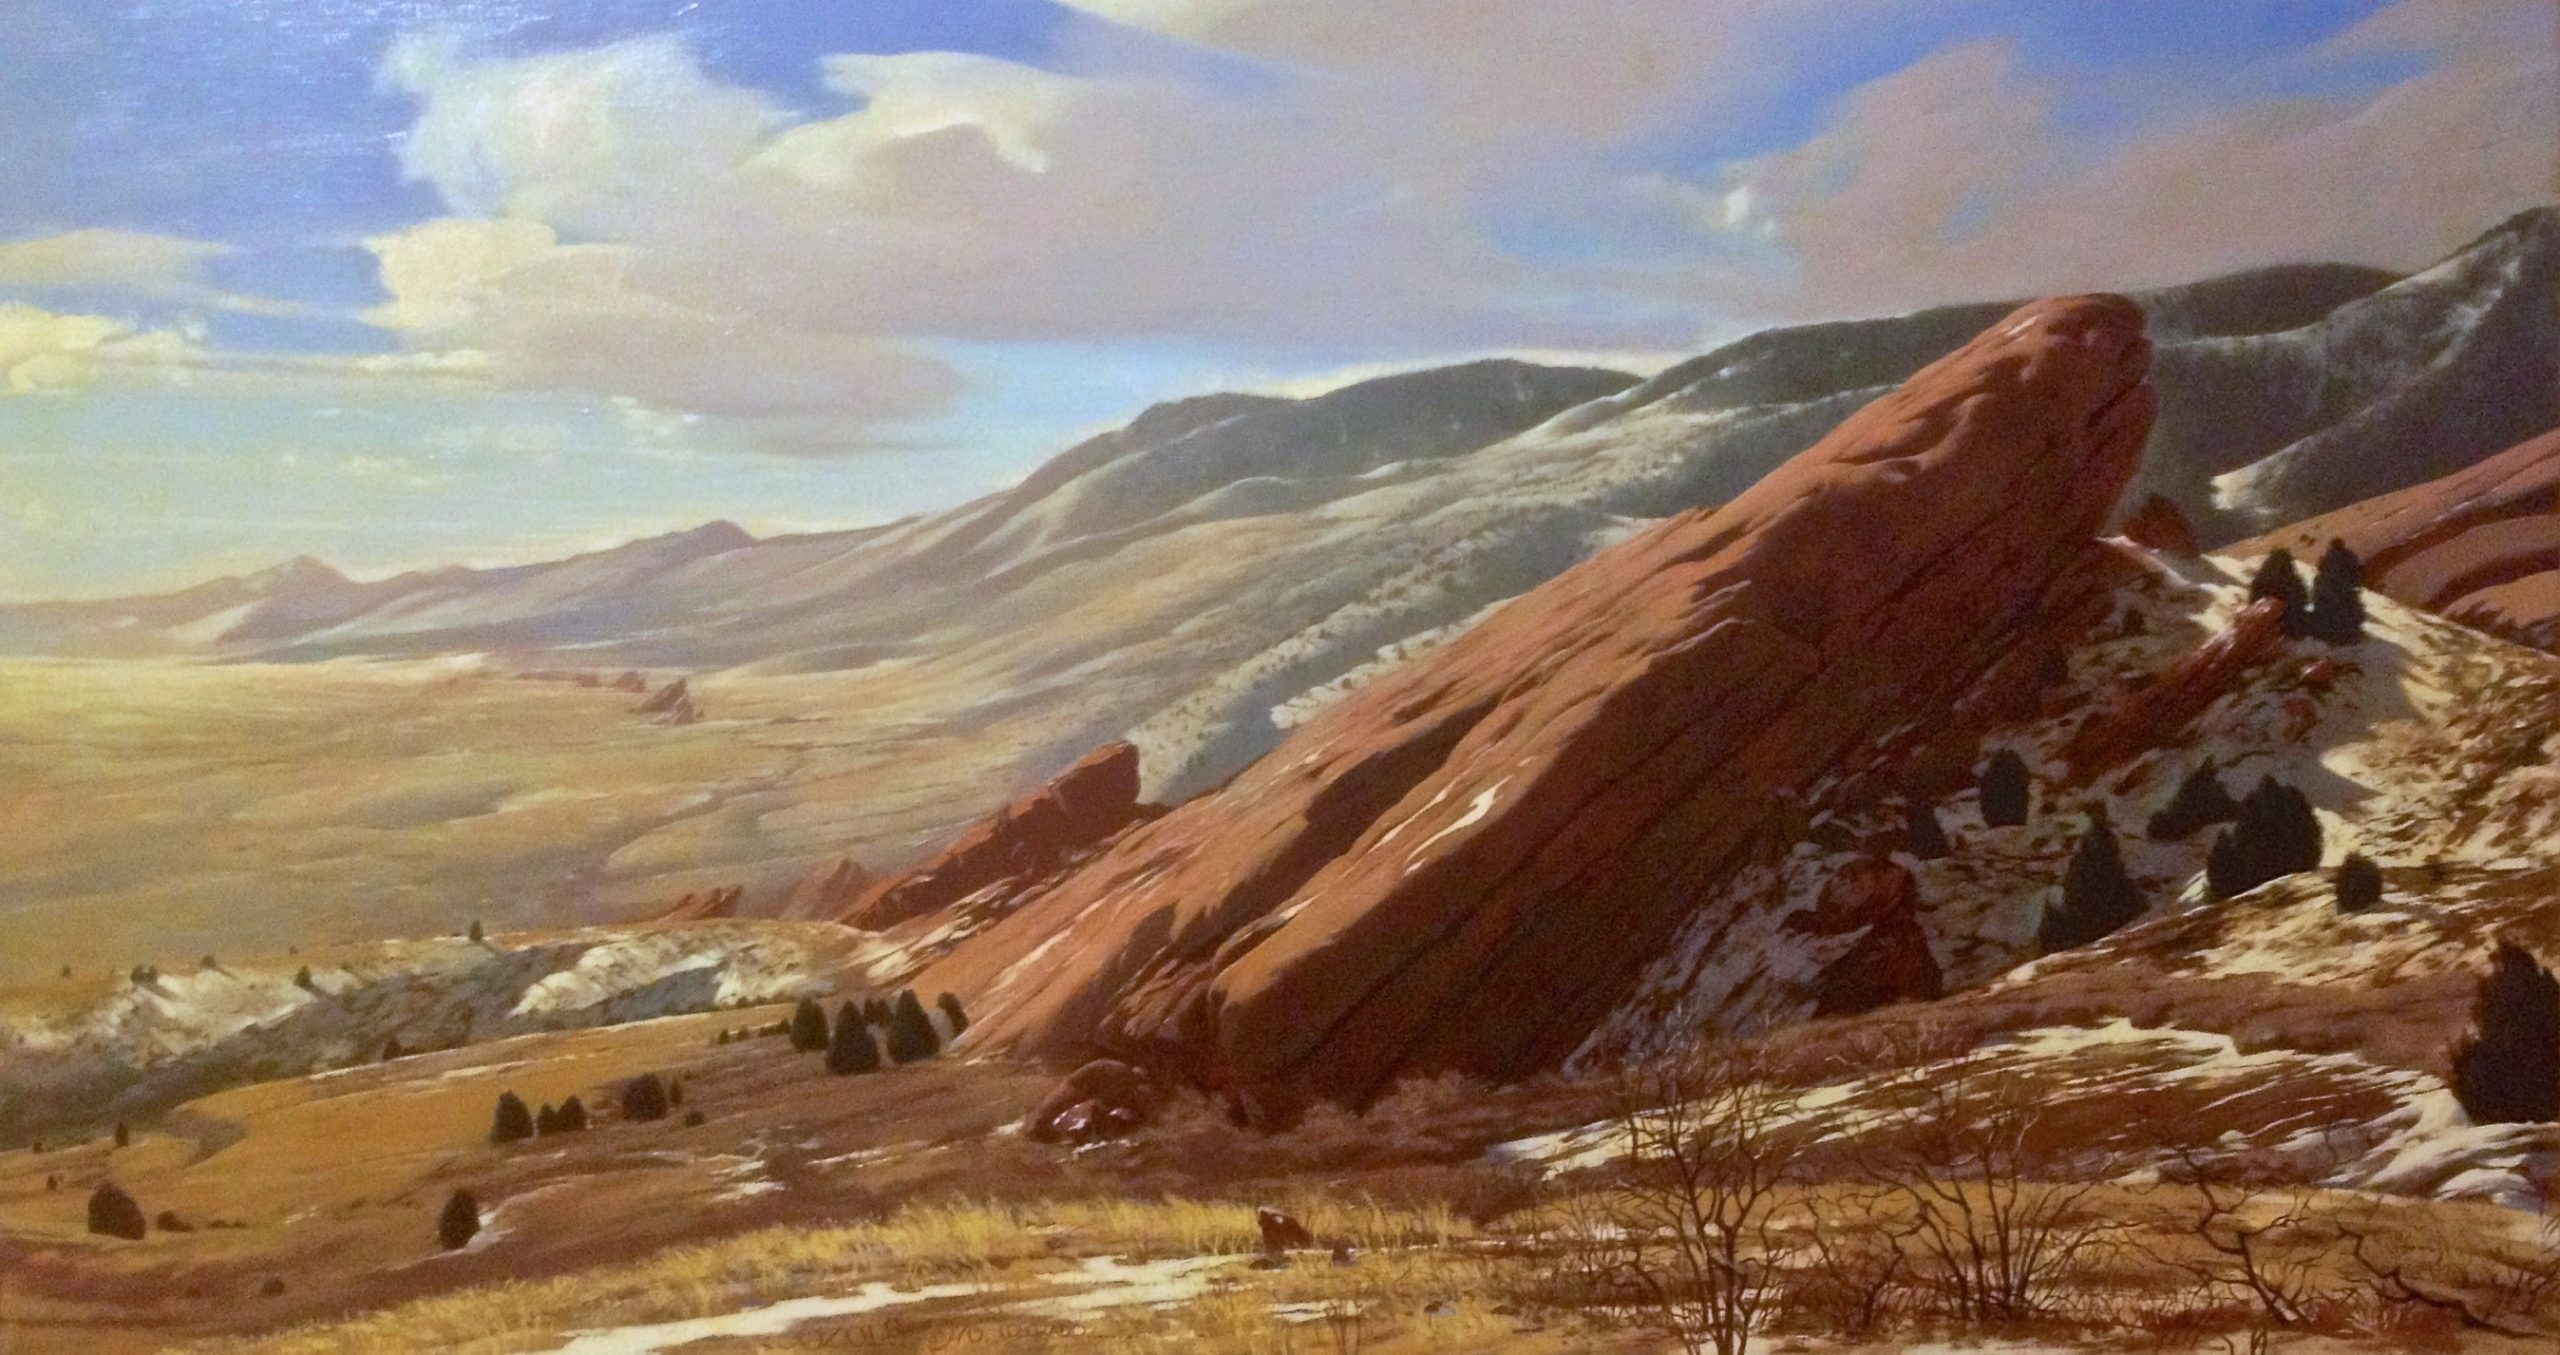 Between the Sun and the Moon: Happy Birthday to Auseklis Ozols, American Realist.